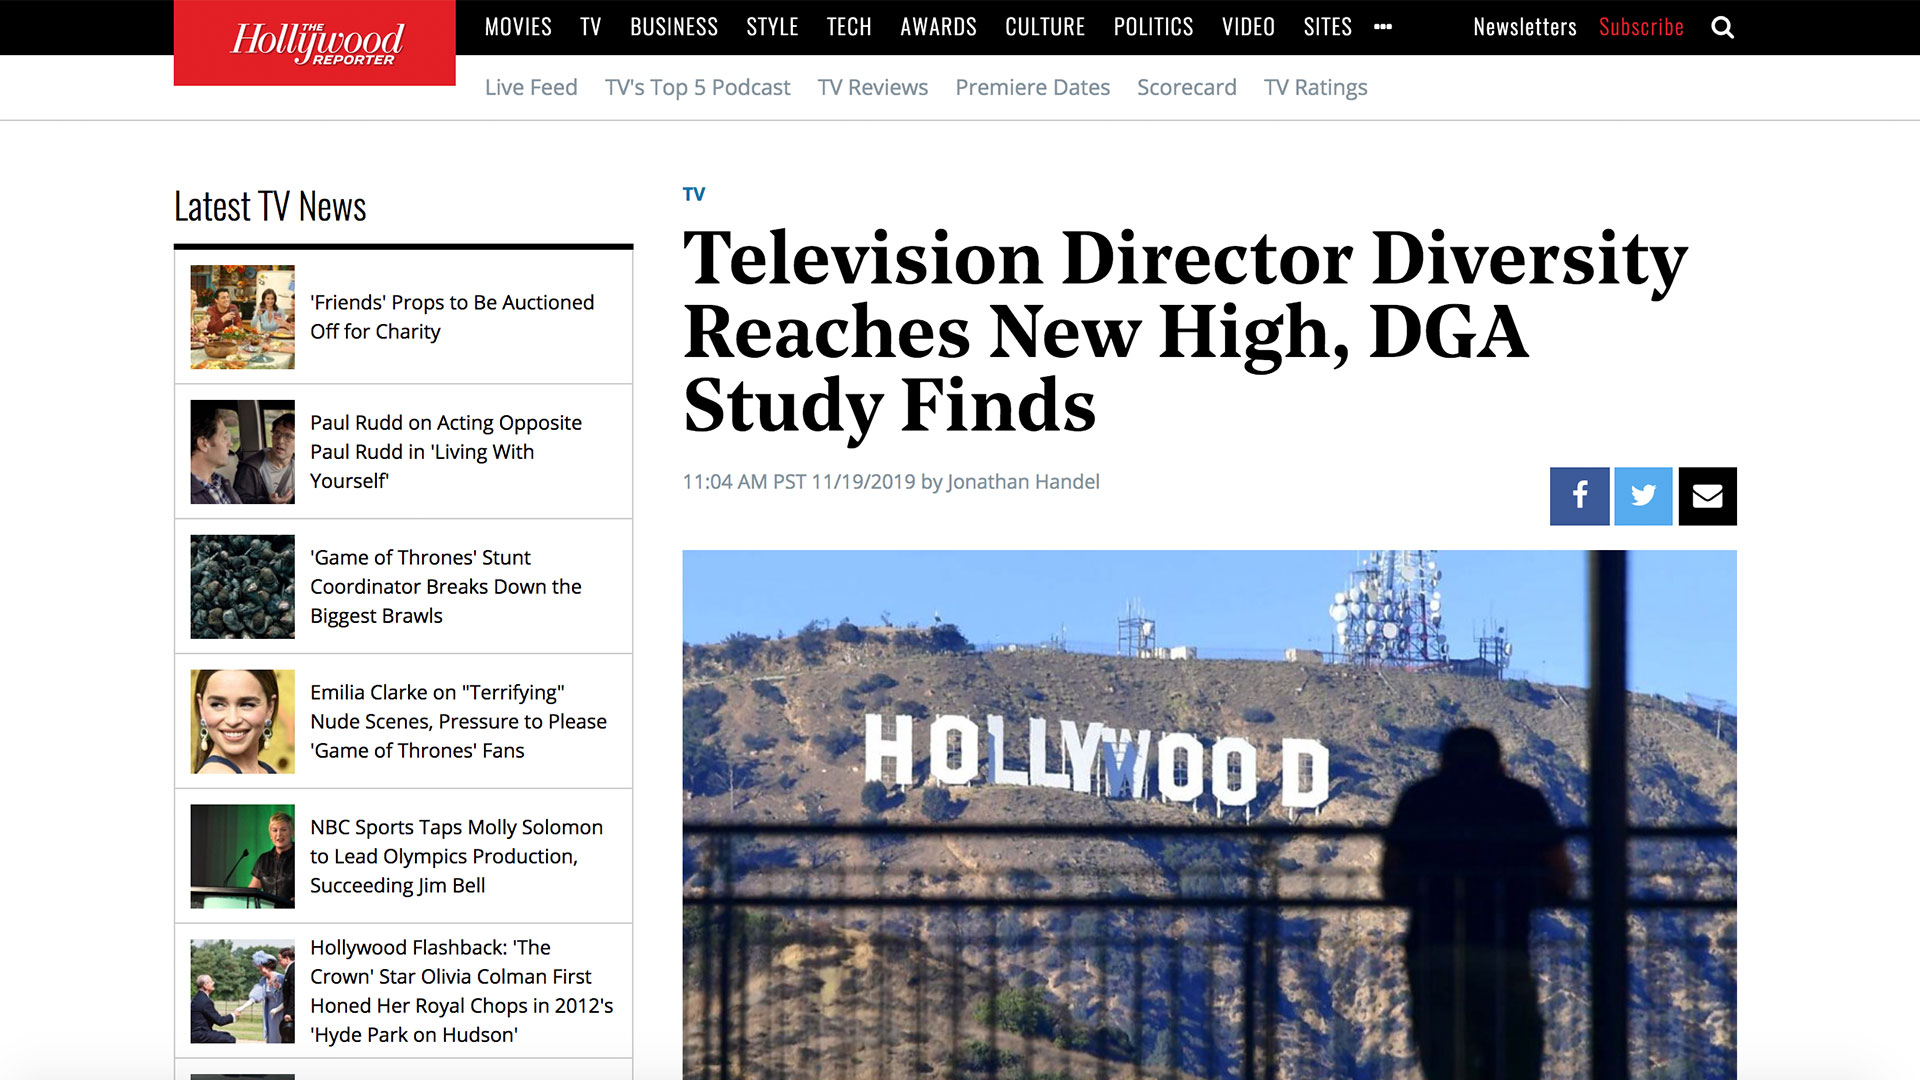 Fairness Rocks News Television Director Diversity Reaches New High, DGA Study Finds